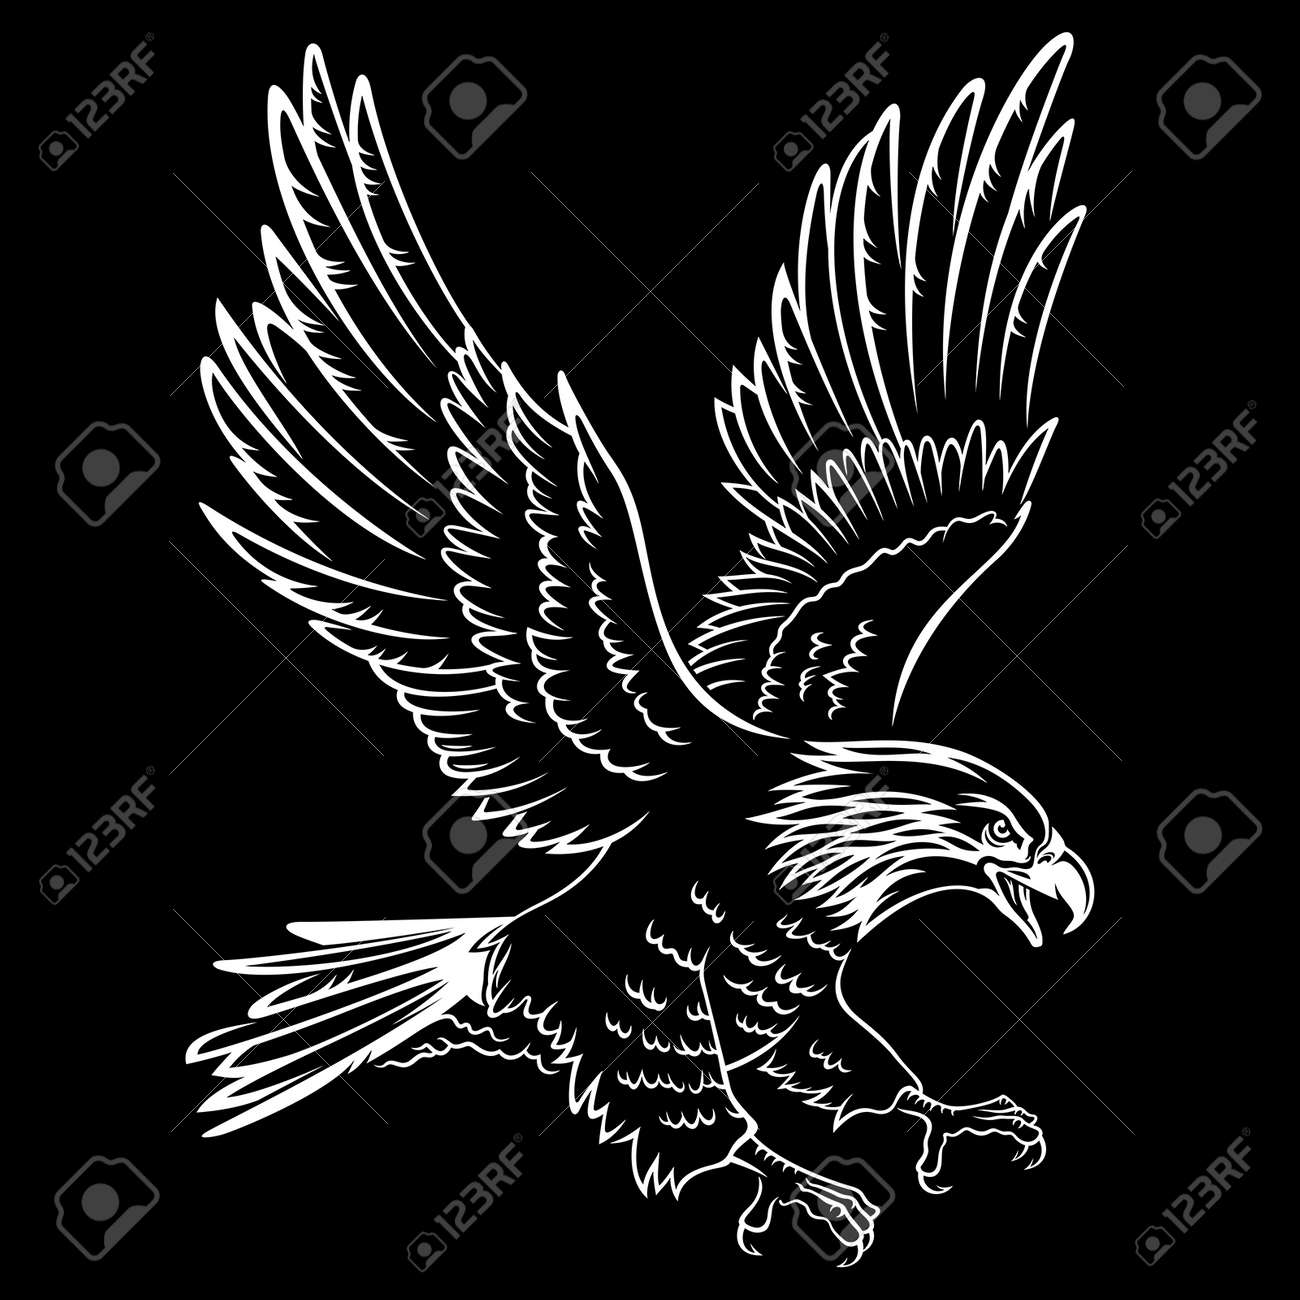 Bald Eagle Silhouette Isolated On Black This Vector Illustration